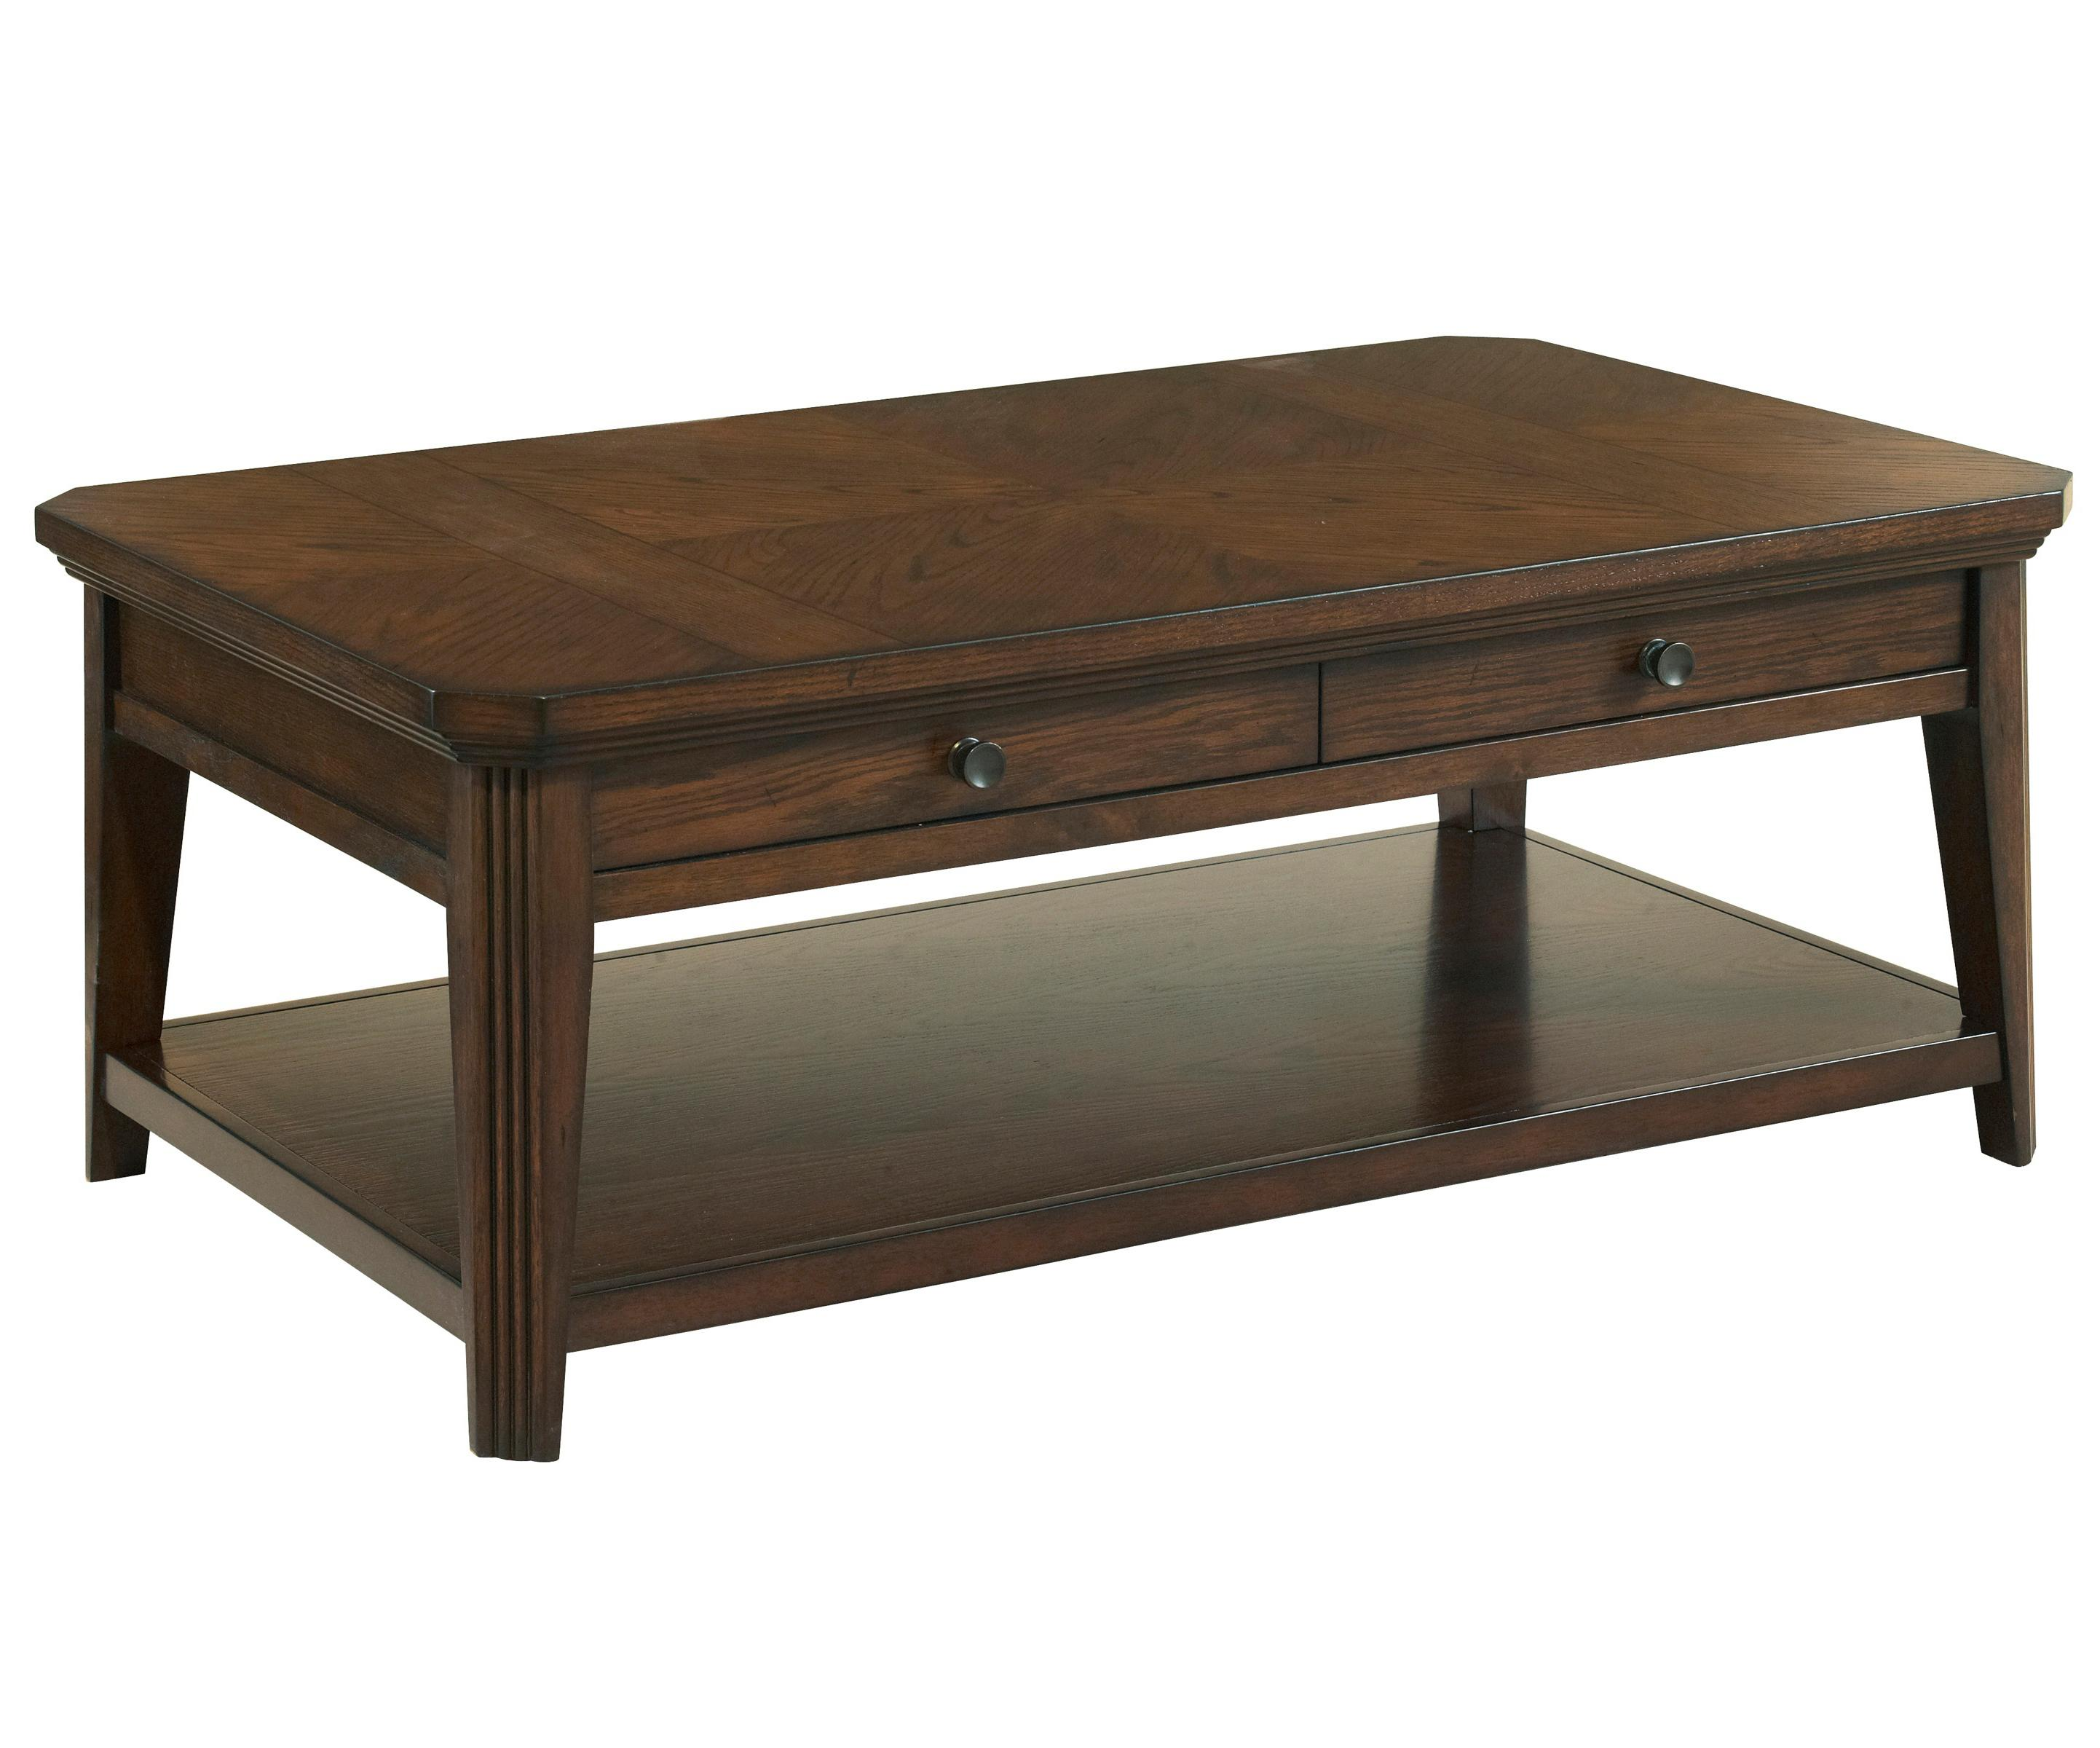 Broyhill Furniture Estes Park Storage Cocktail Table - Item Number: 4364-011